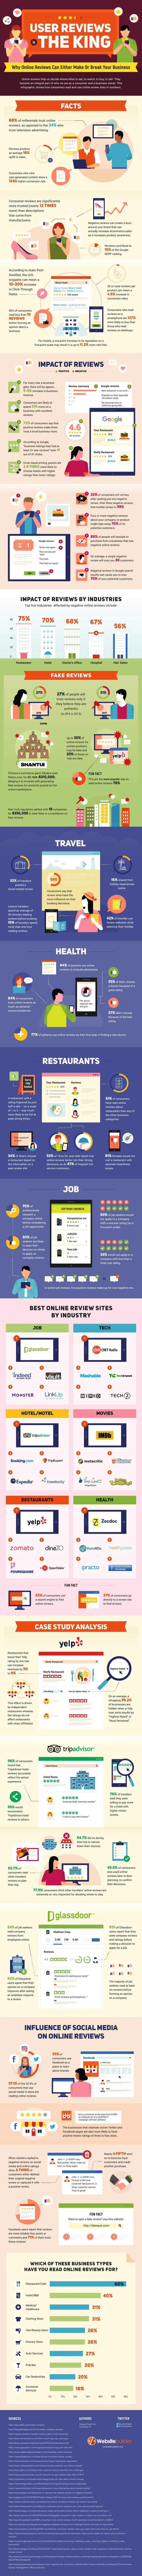 The Importance of Online Reviews to Small Businesses